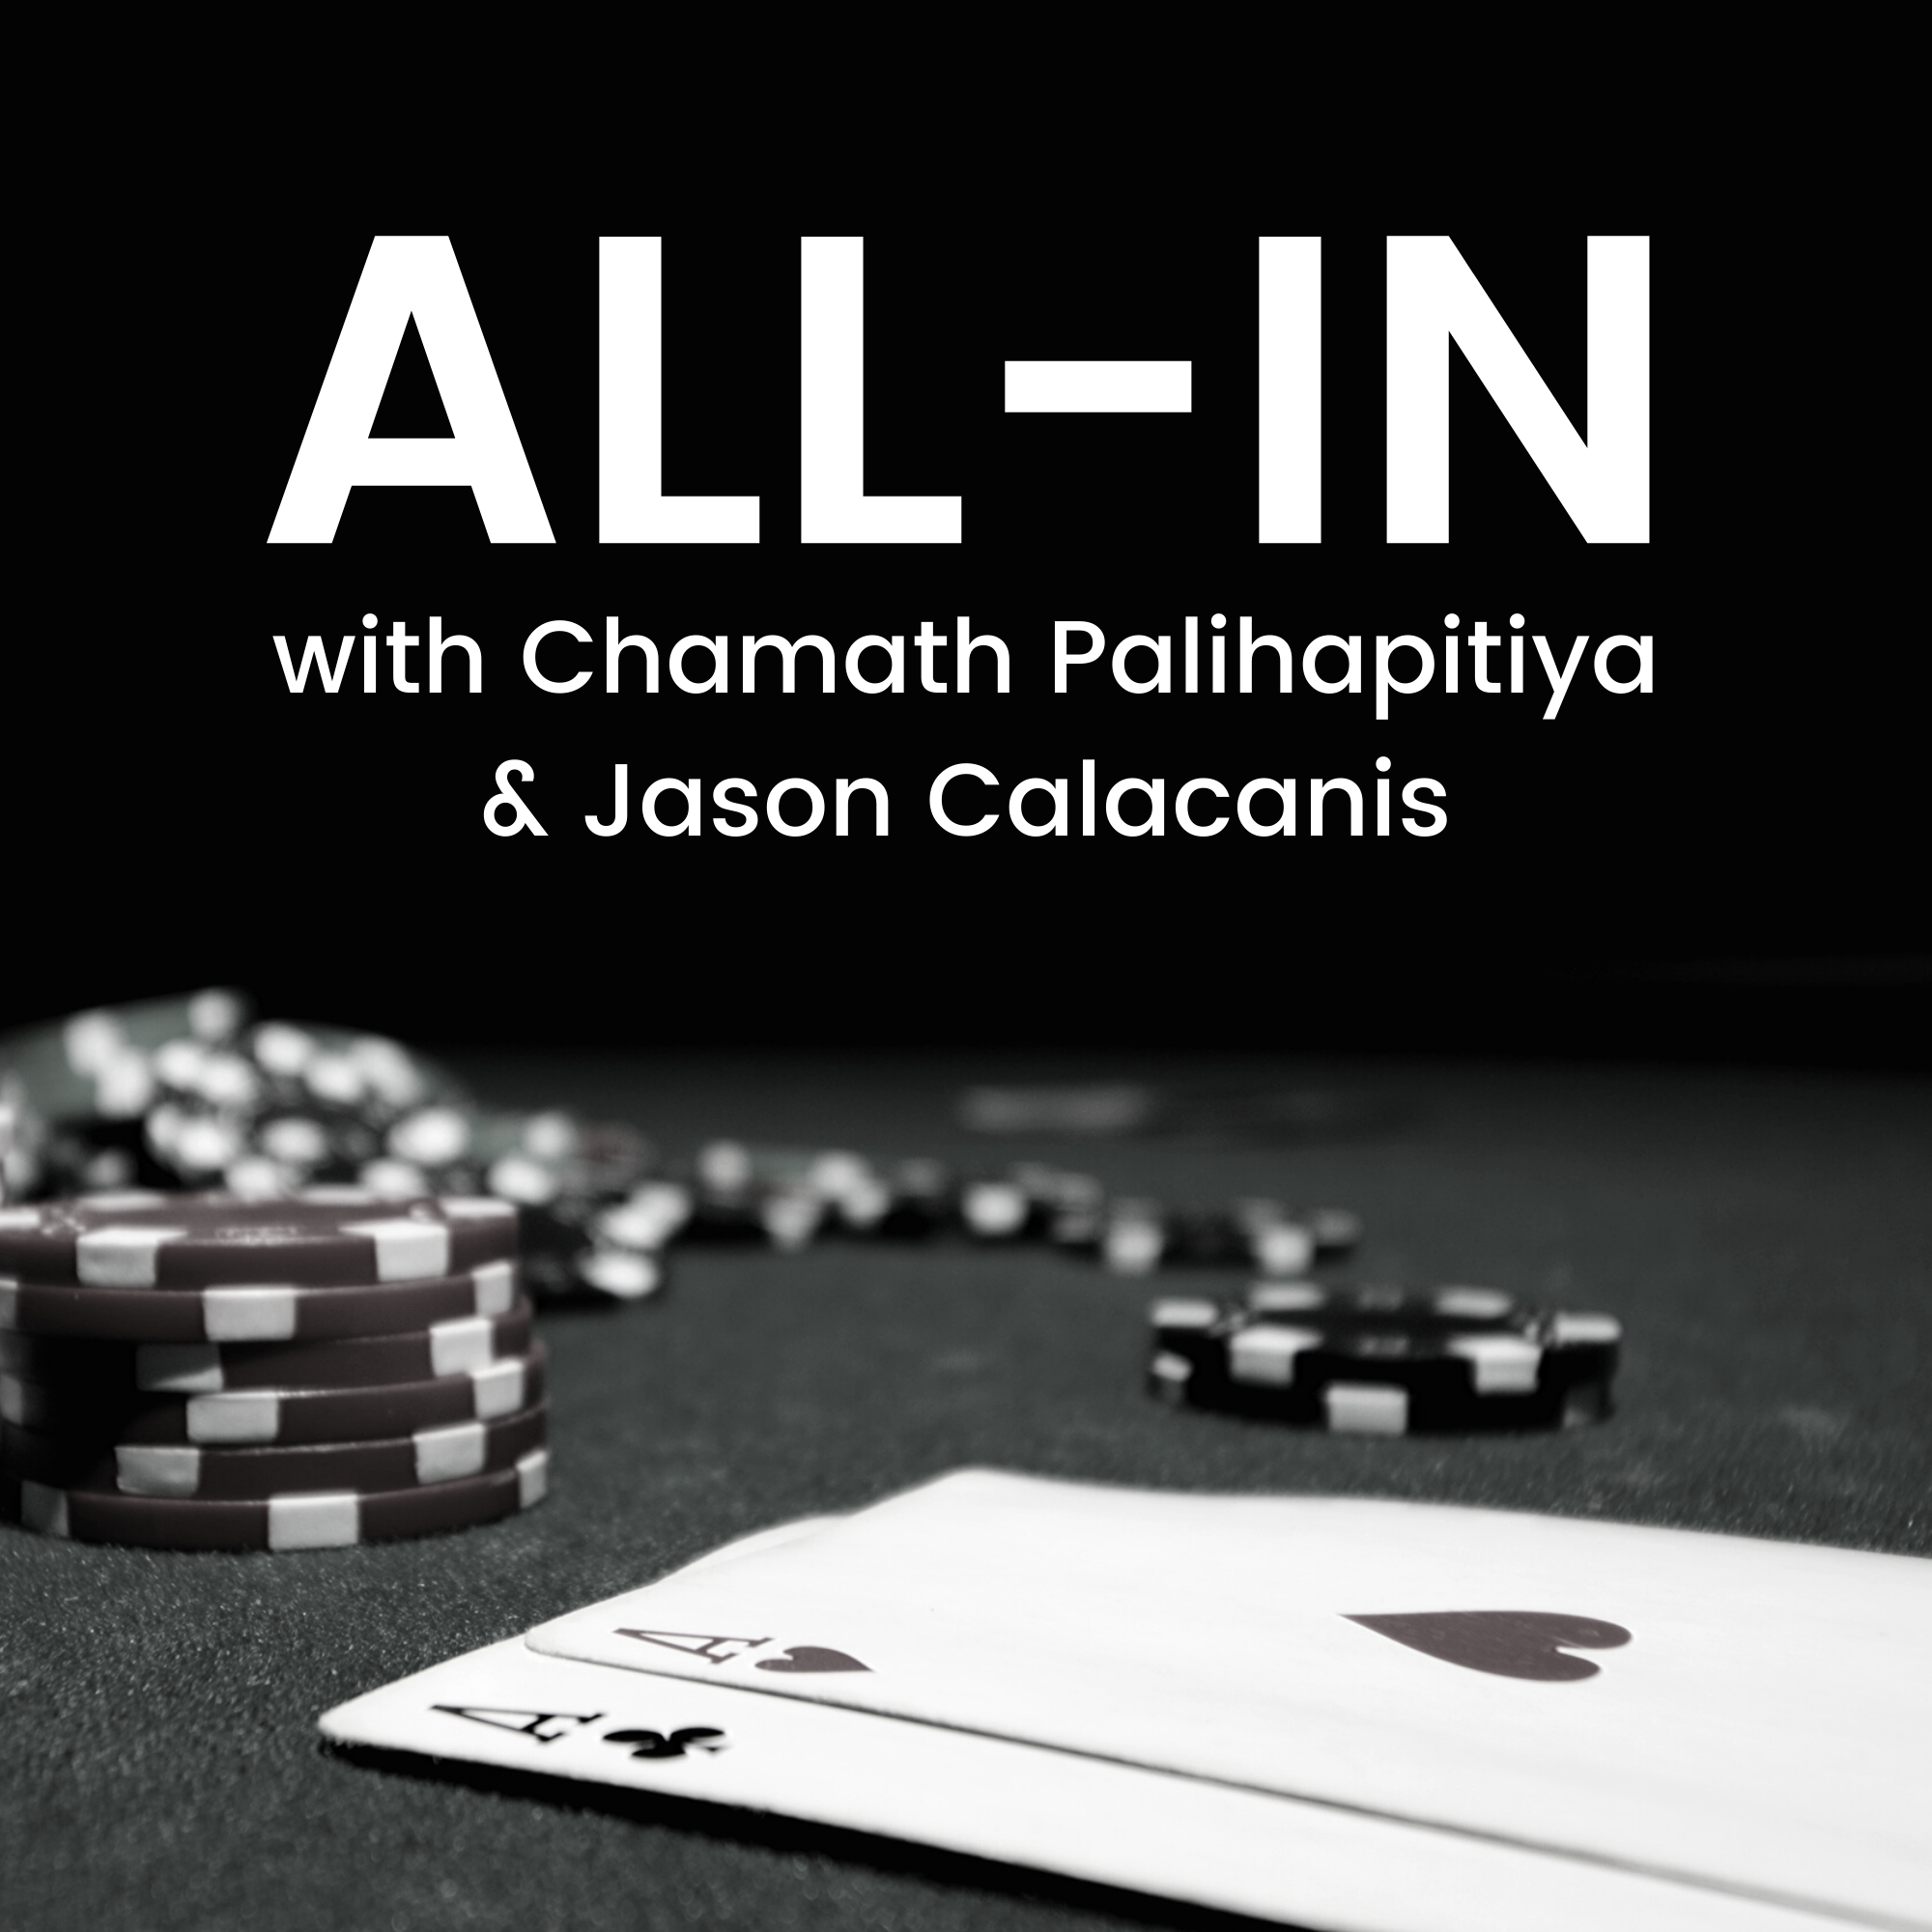 podcast thumbnail for 'All-In with Chamath Palihapitiya & Jason Calacanis'